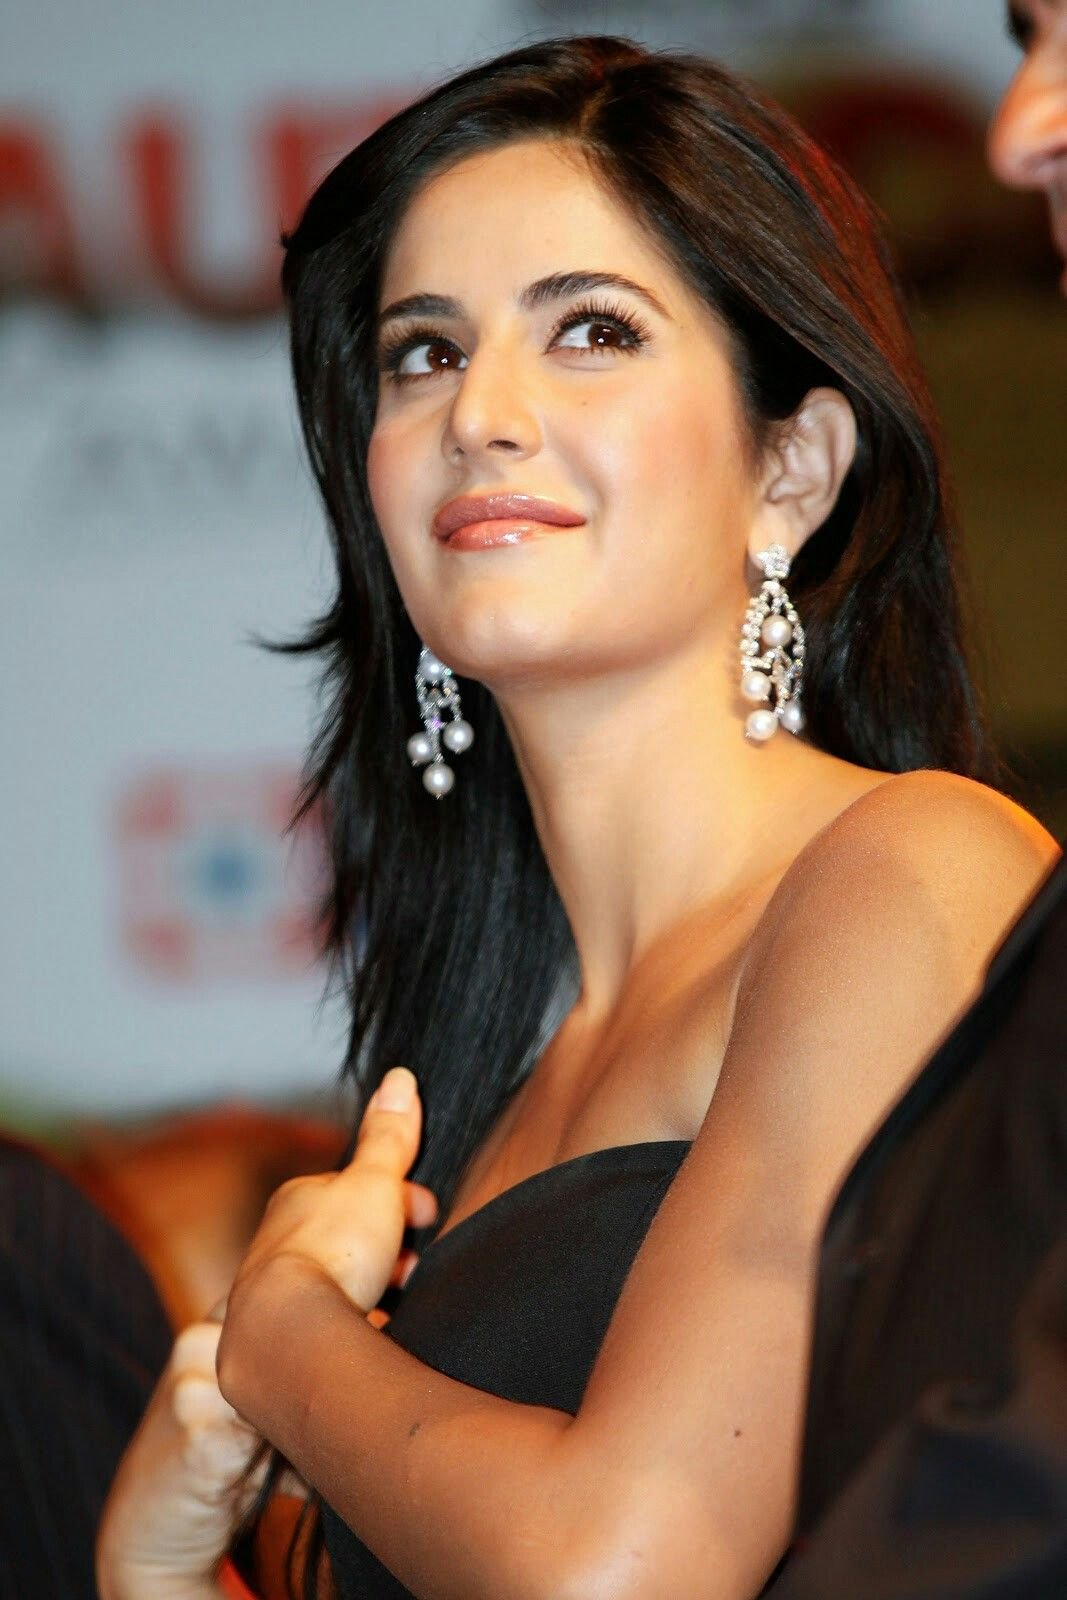 katrina kaif follow @archit3298 on twitter #beautiful #hot